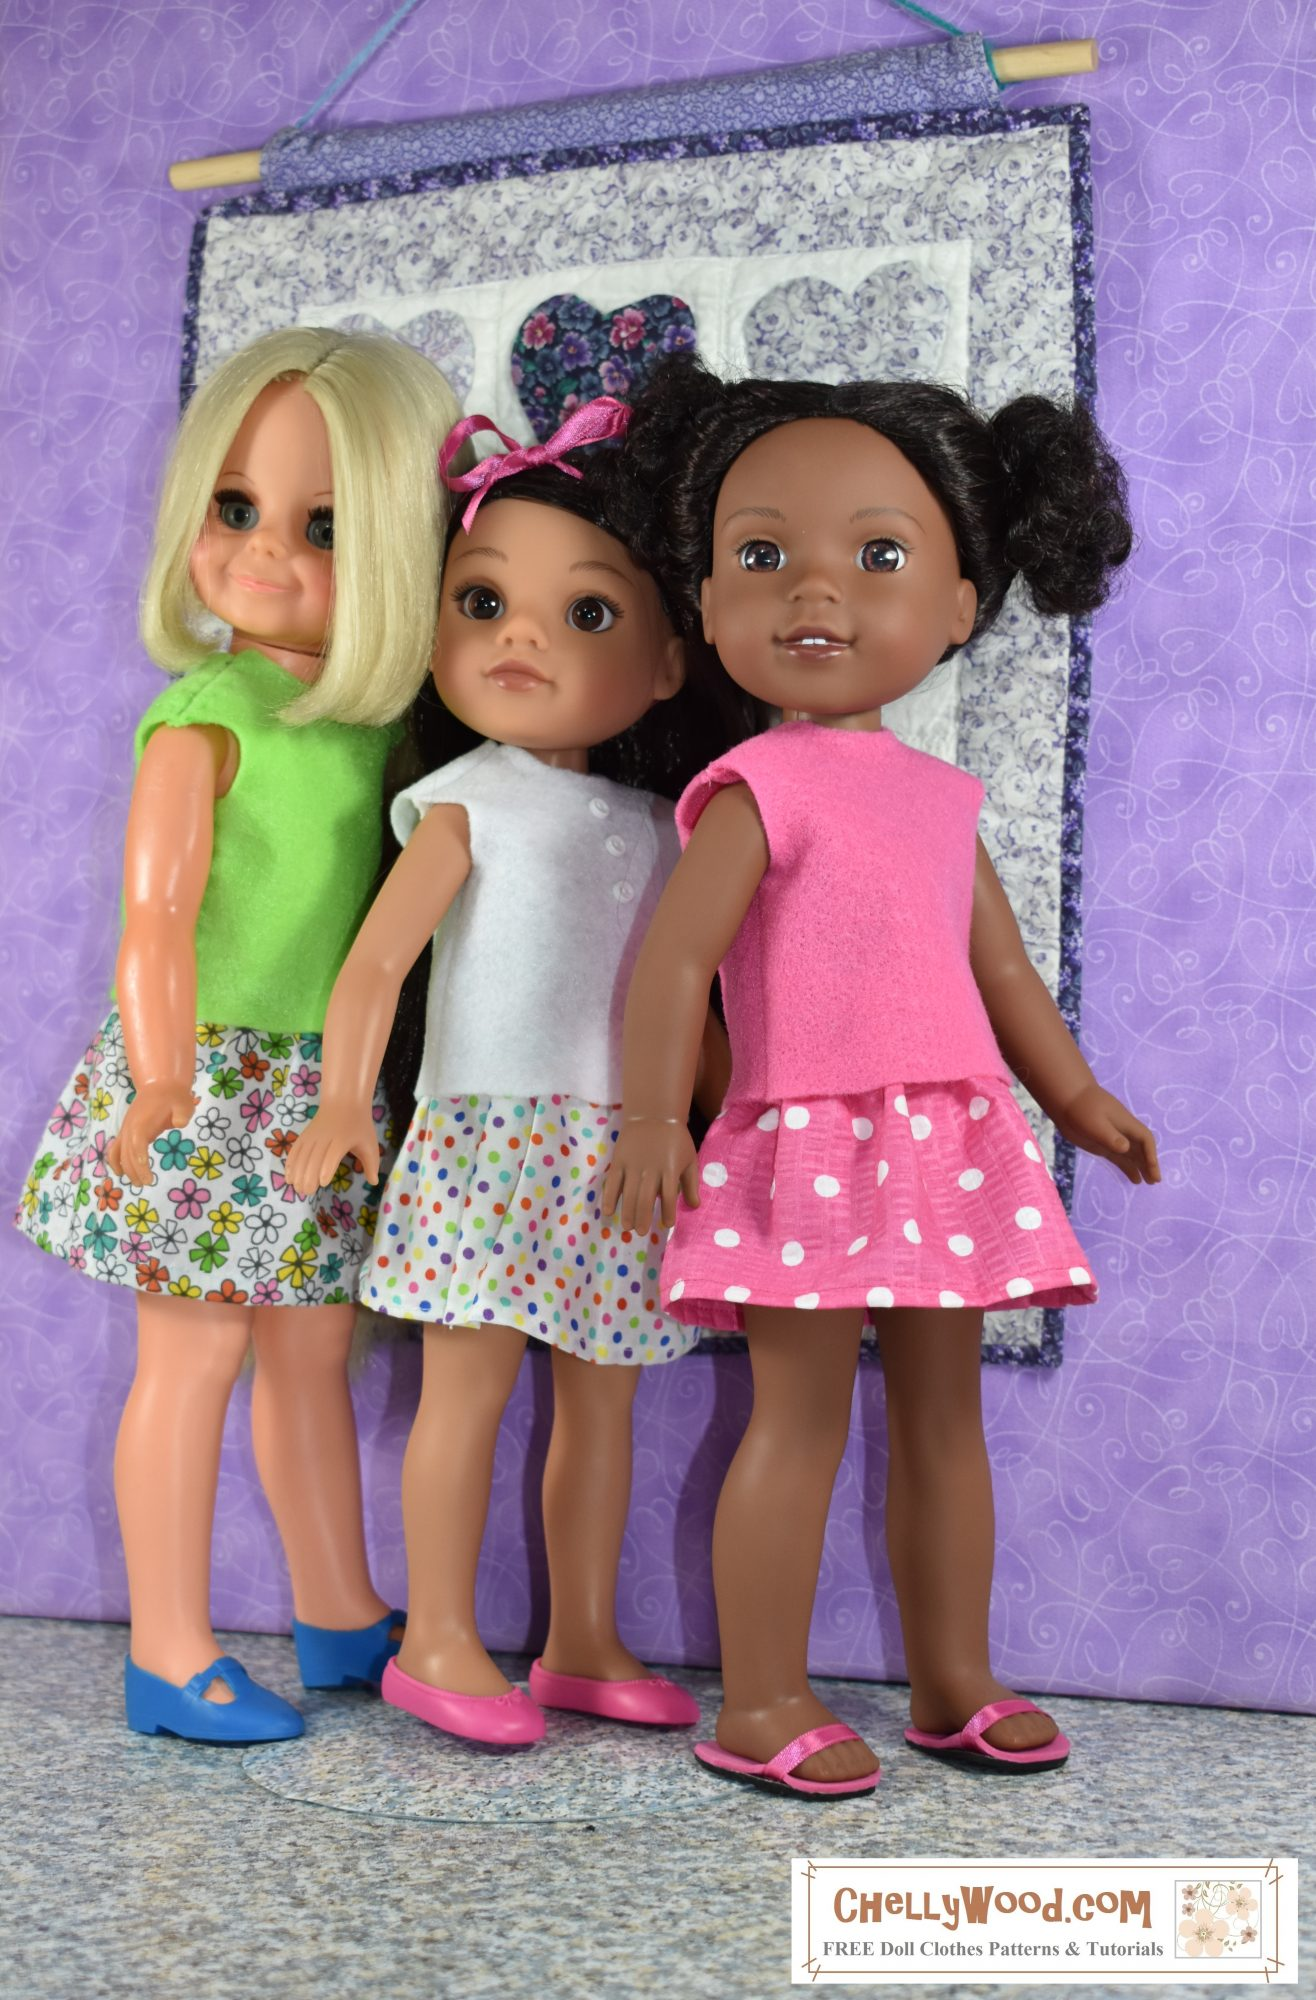 This image shows three dolls lined up in a row (like three friends marching in unison): on the far left is a vintage Velvet doll wearing a green felt shirt with a retro-print floral skirt; in the middle is a Hearts for Hearts Girls Consuelo doll wearing a white felt shirt with a multicolored white skirt; on the right is a Kendall Wellie Wisher doll from American Girl wearing a pink felt top with a matching pink and white polka dot skirt.